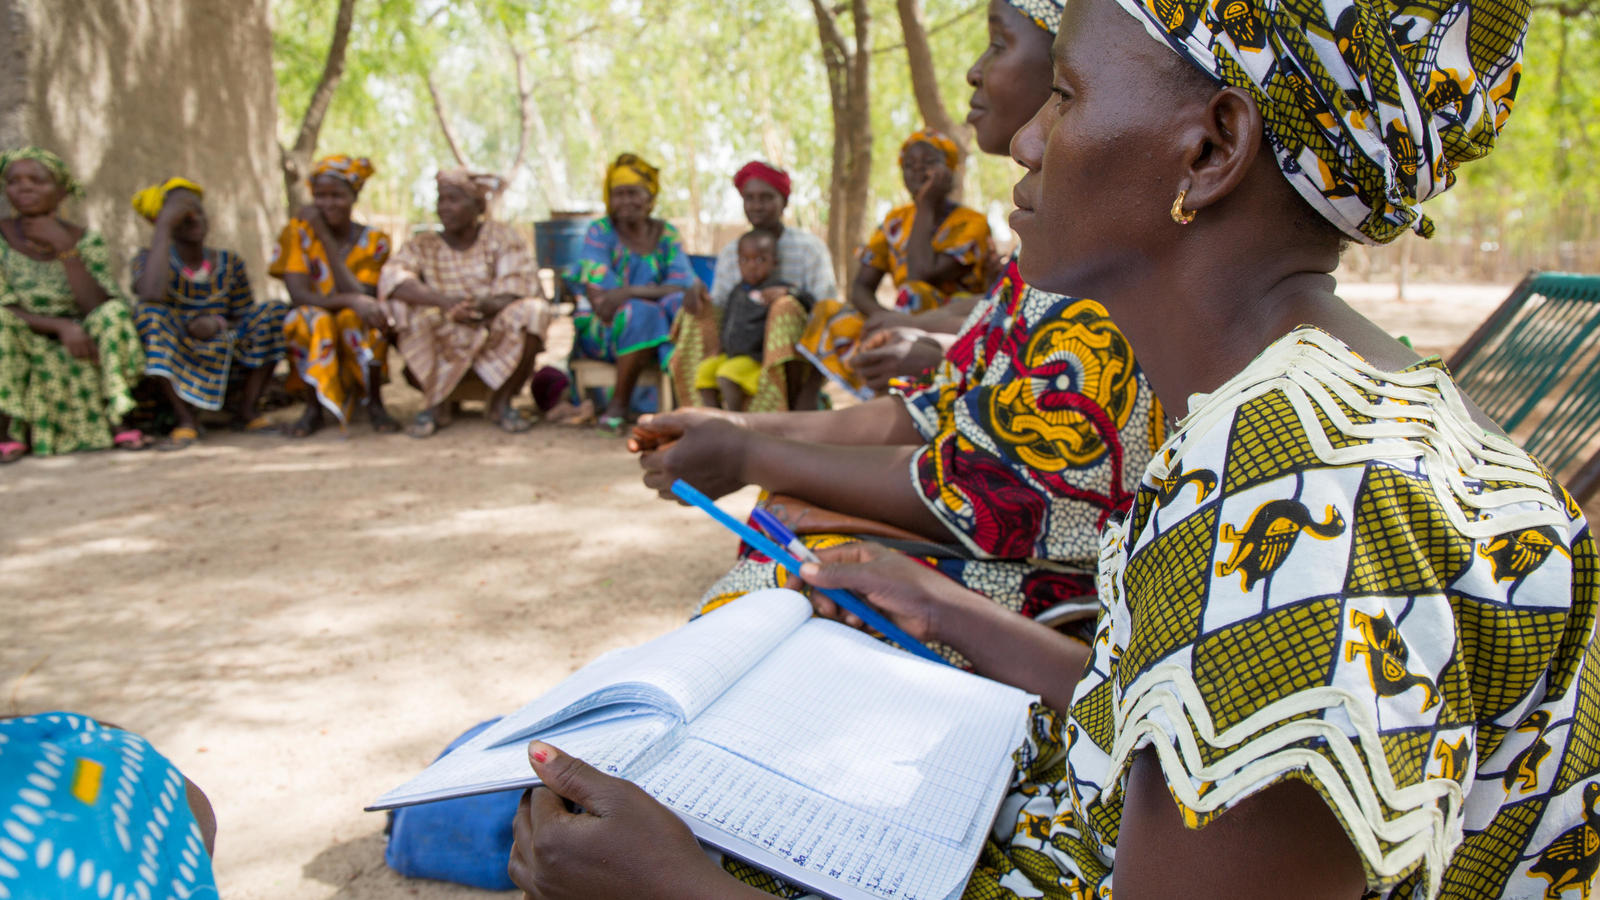 Members in discussion during a women's group meeting in Segou district, Mali.